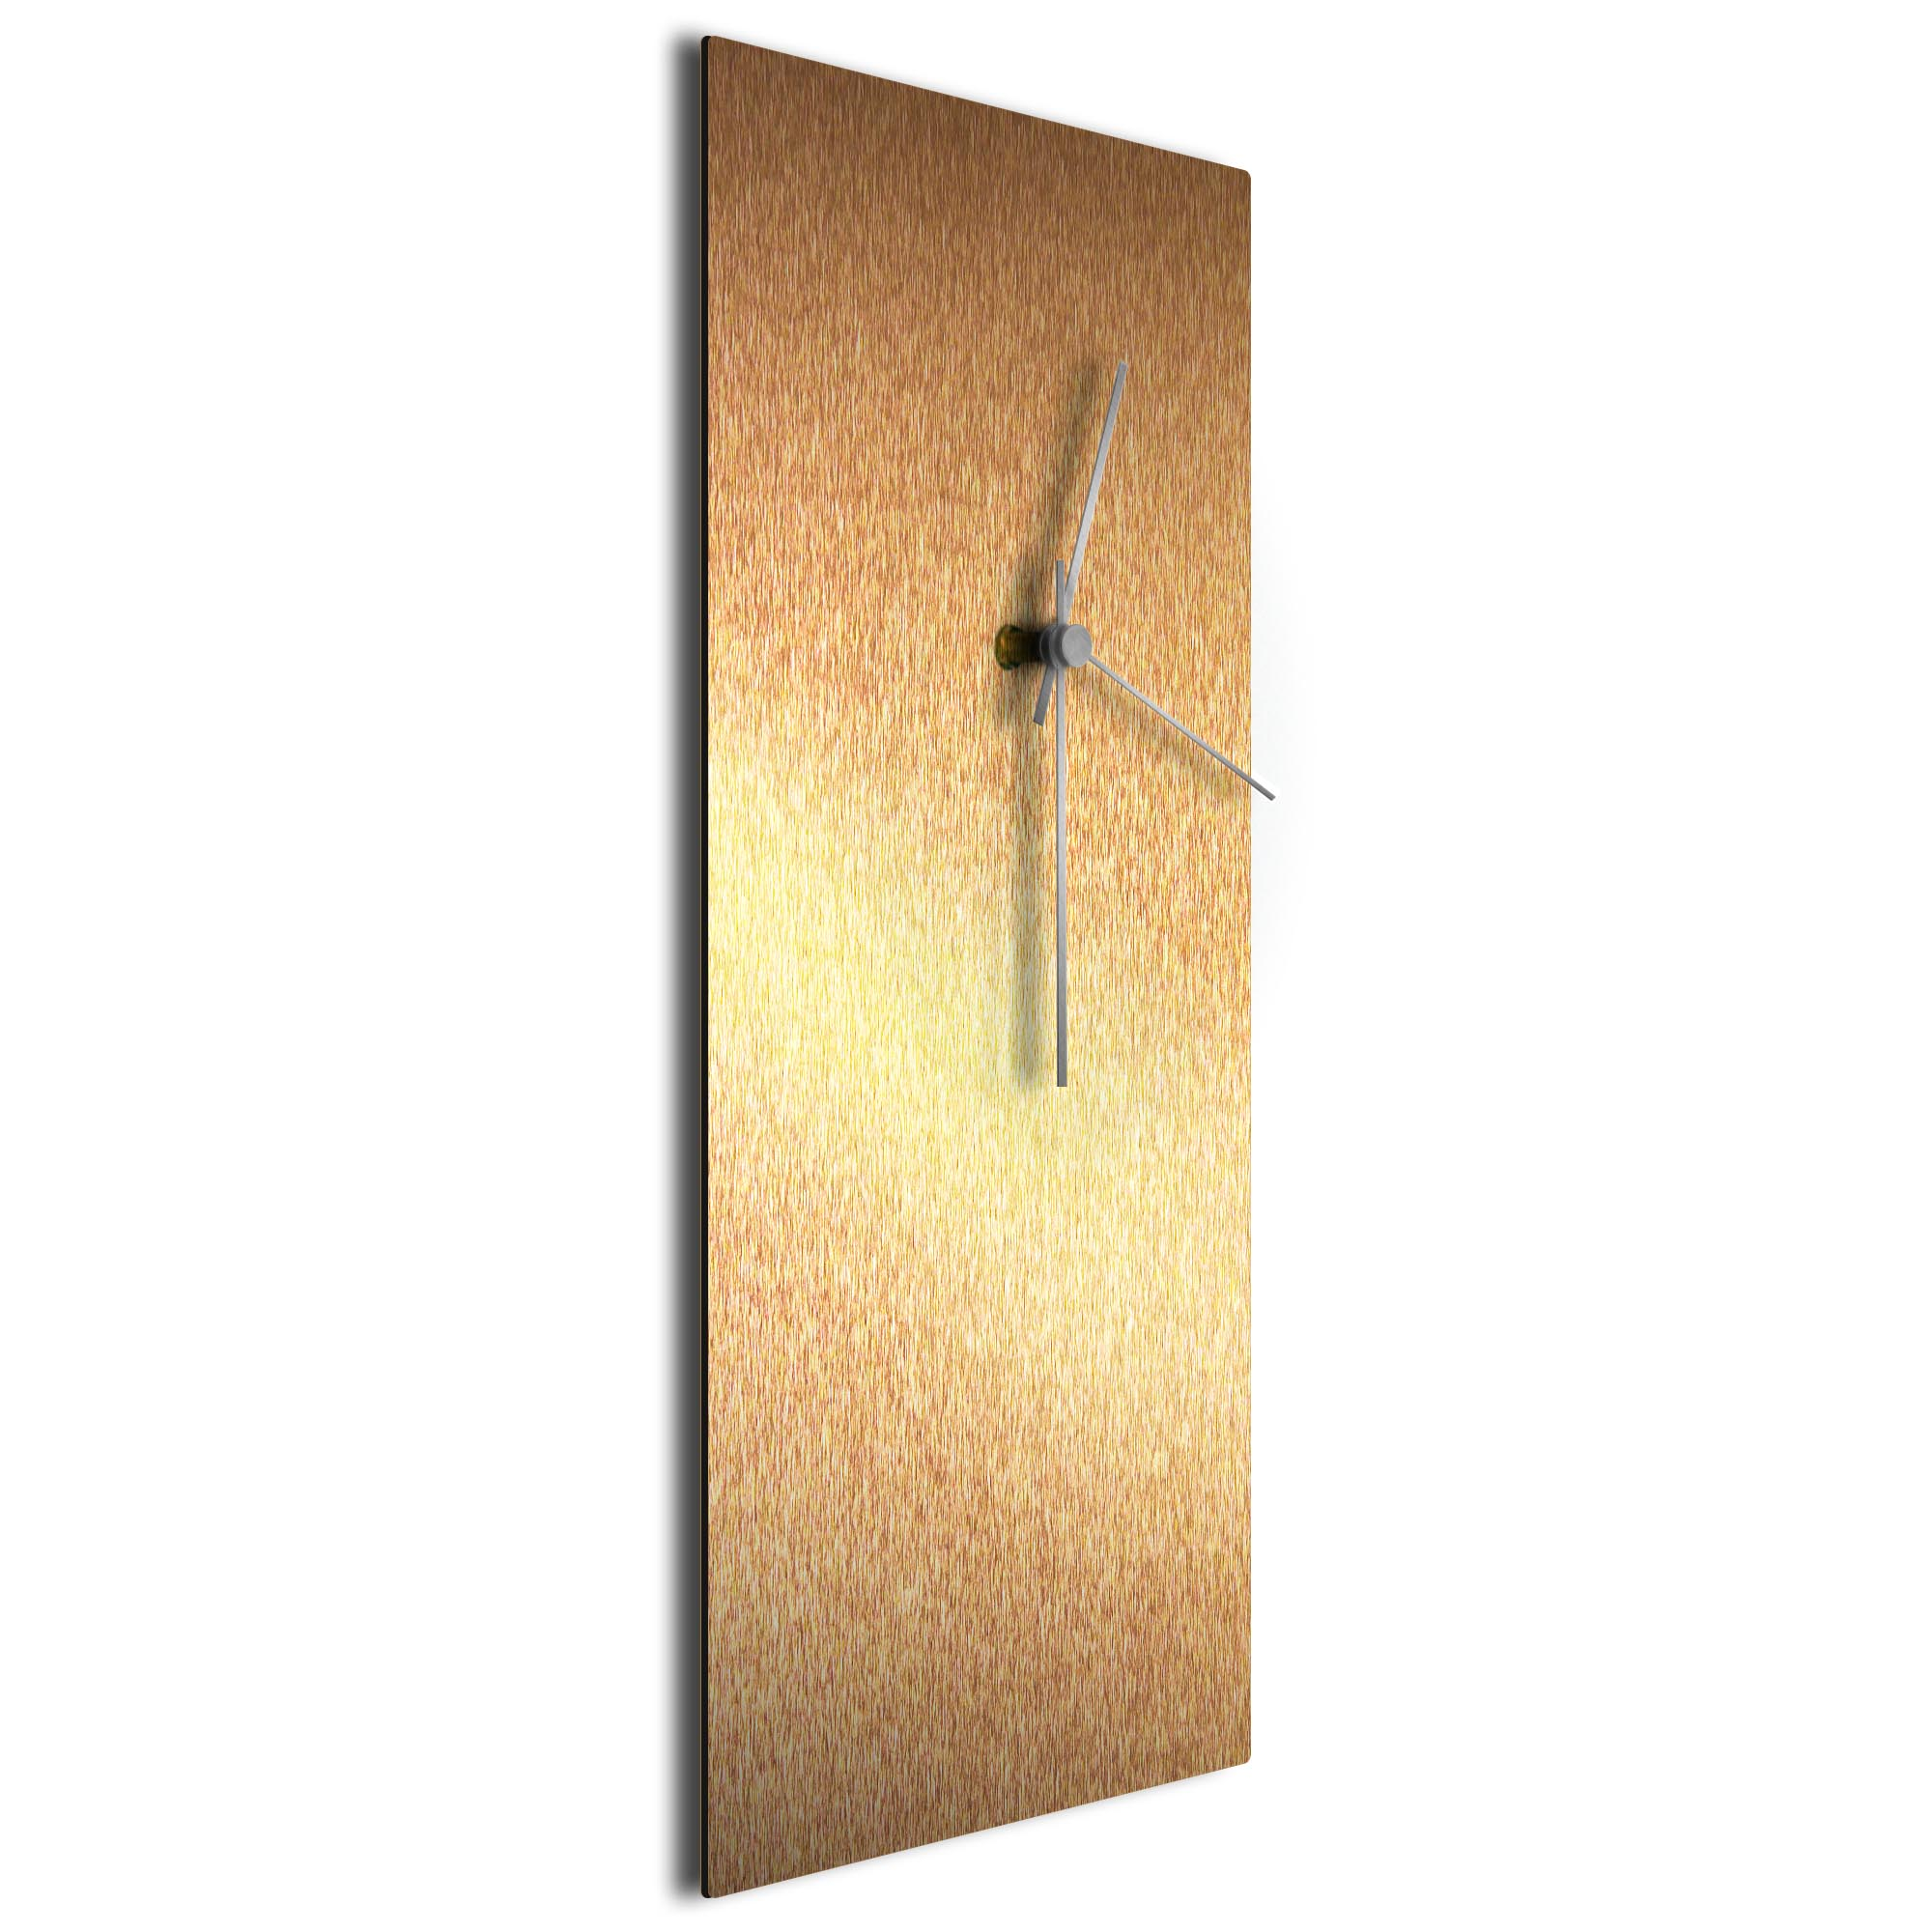 Bronzesmith Clock Silver - Image 2